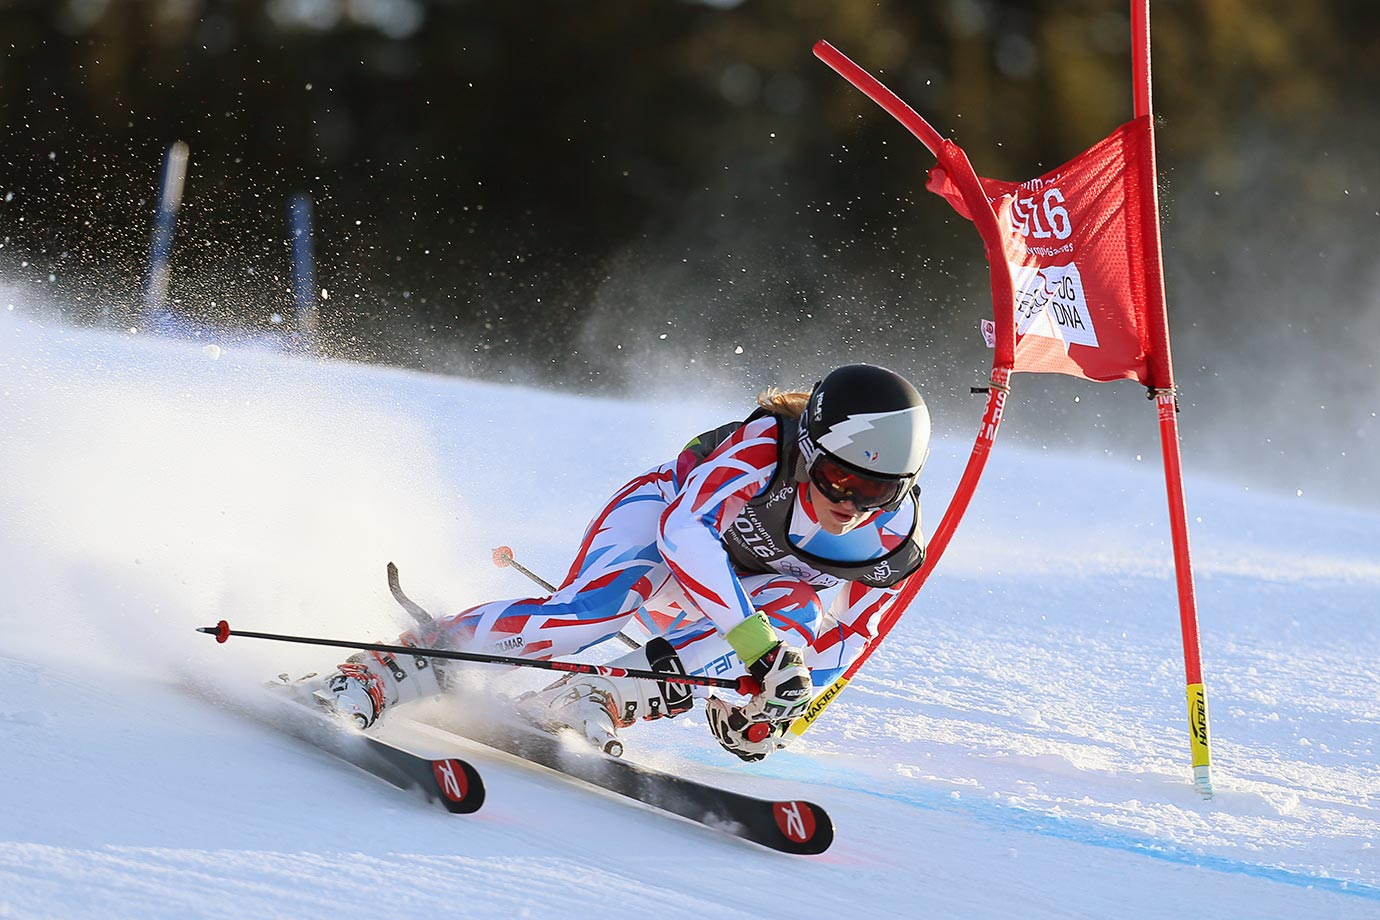 Camille Cerutti (FRA) competes in the Alpine Skiing Ladies Giant Slalom at the Hafjell Olympic Slope on Feb. 16, 2016 during the Winter Youth Olympic Games in Lillehammer, Norway.